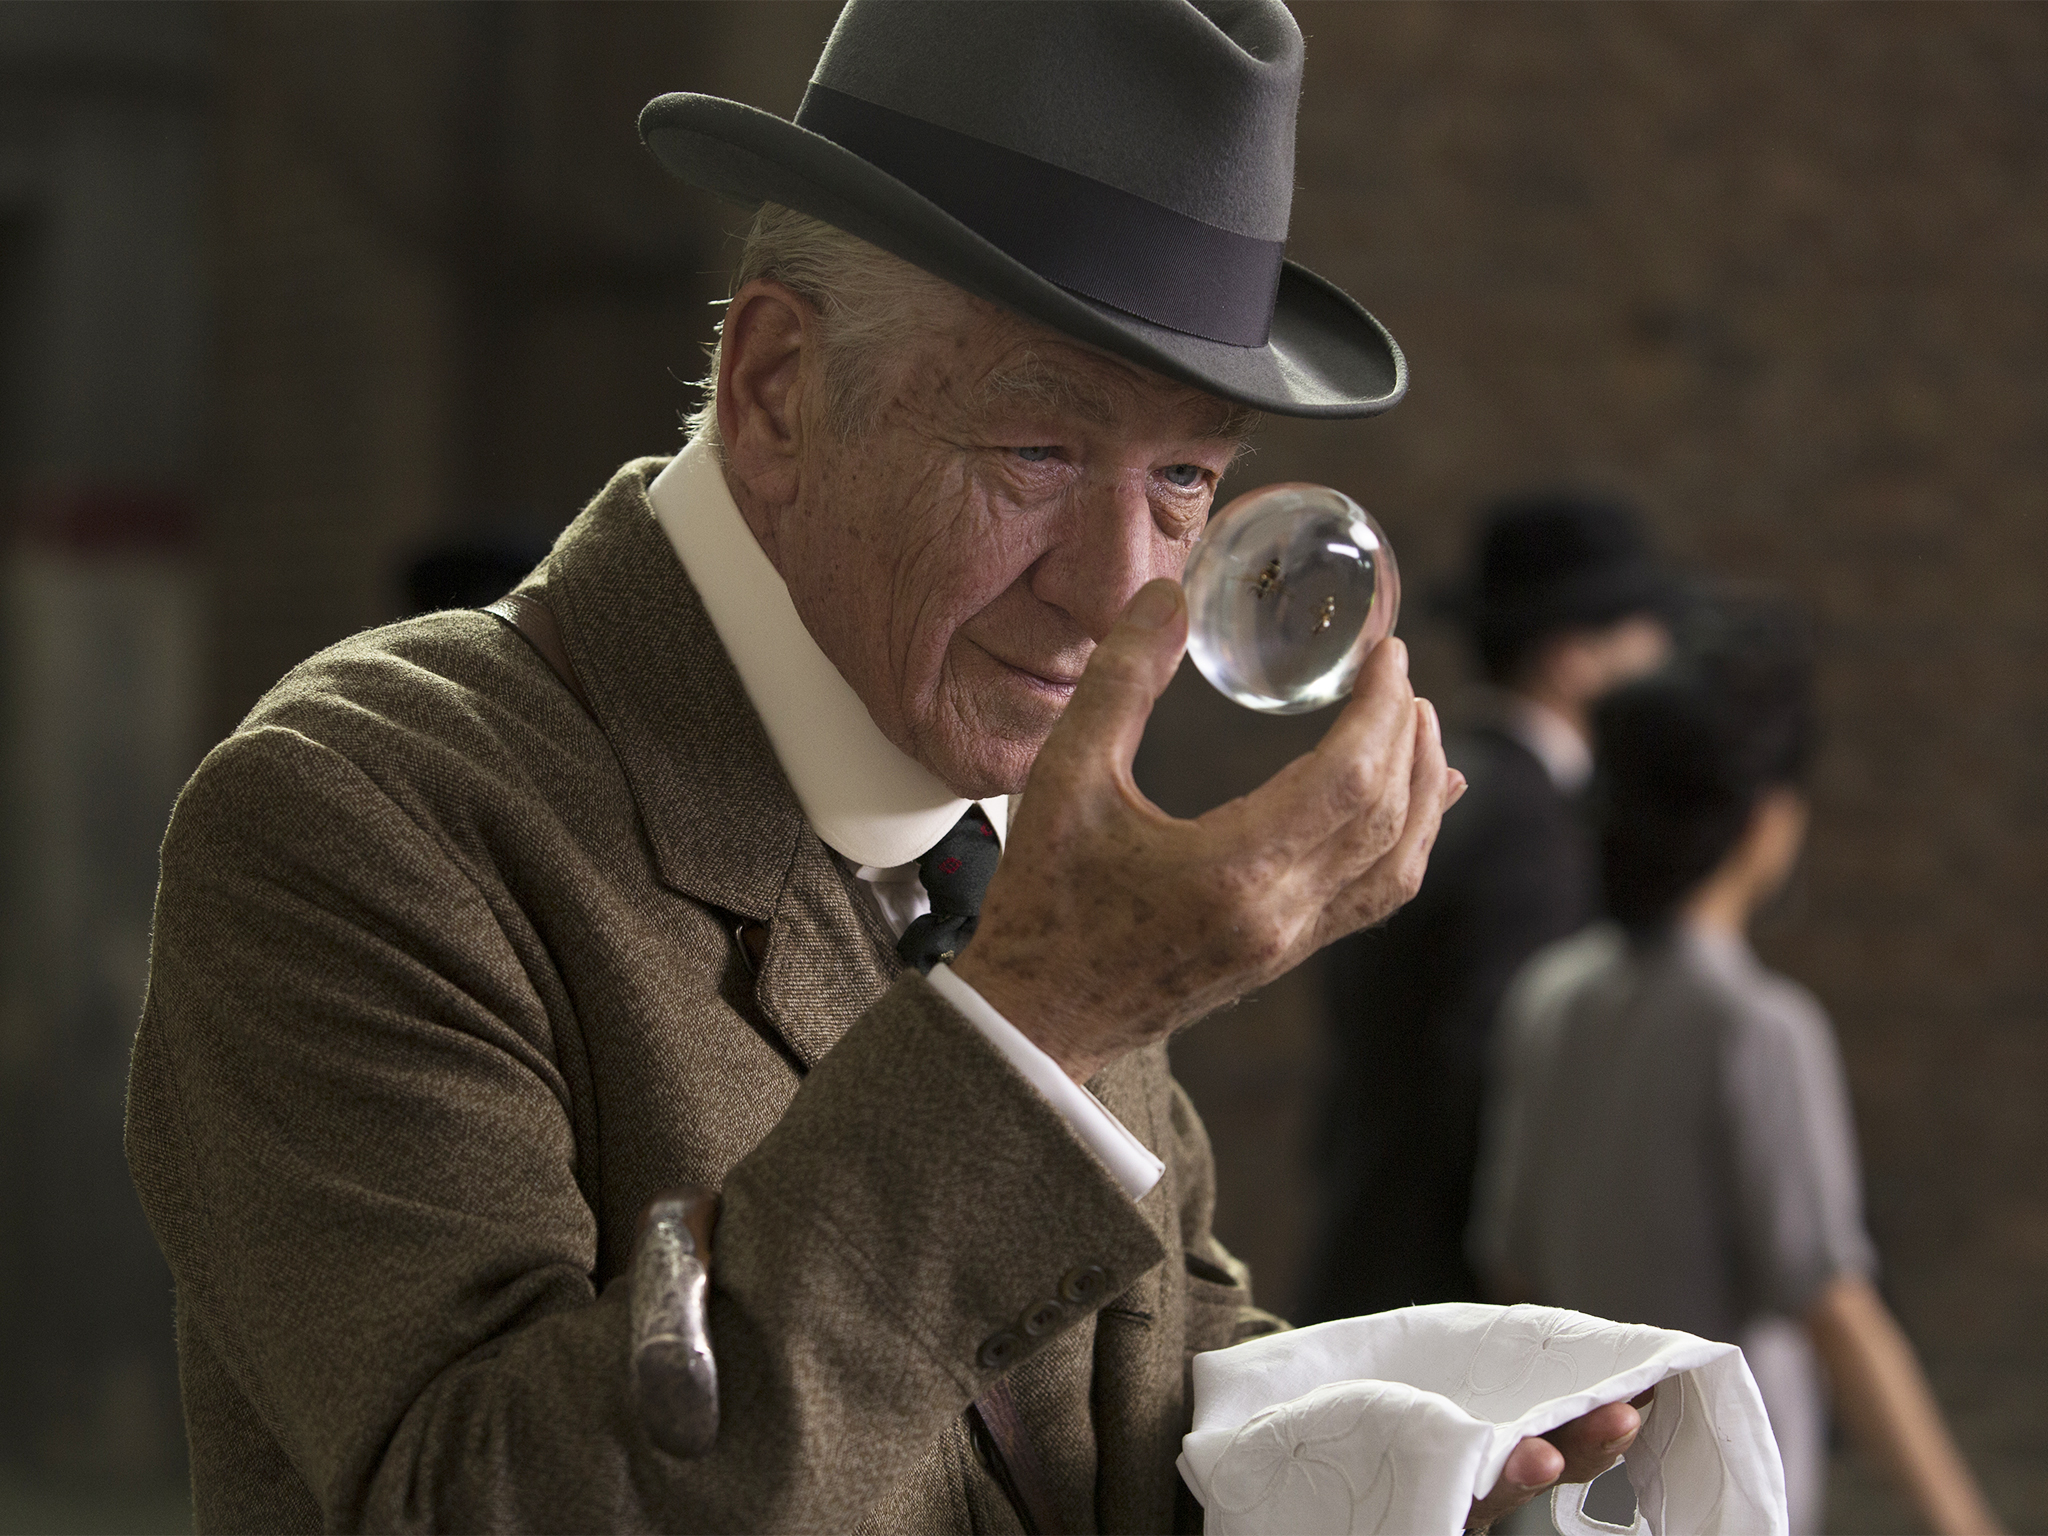 2048x1536 > Mr. Holmes Wallpapers